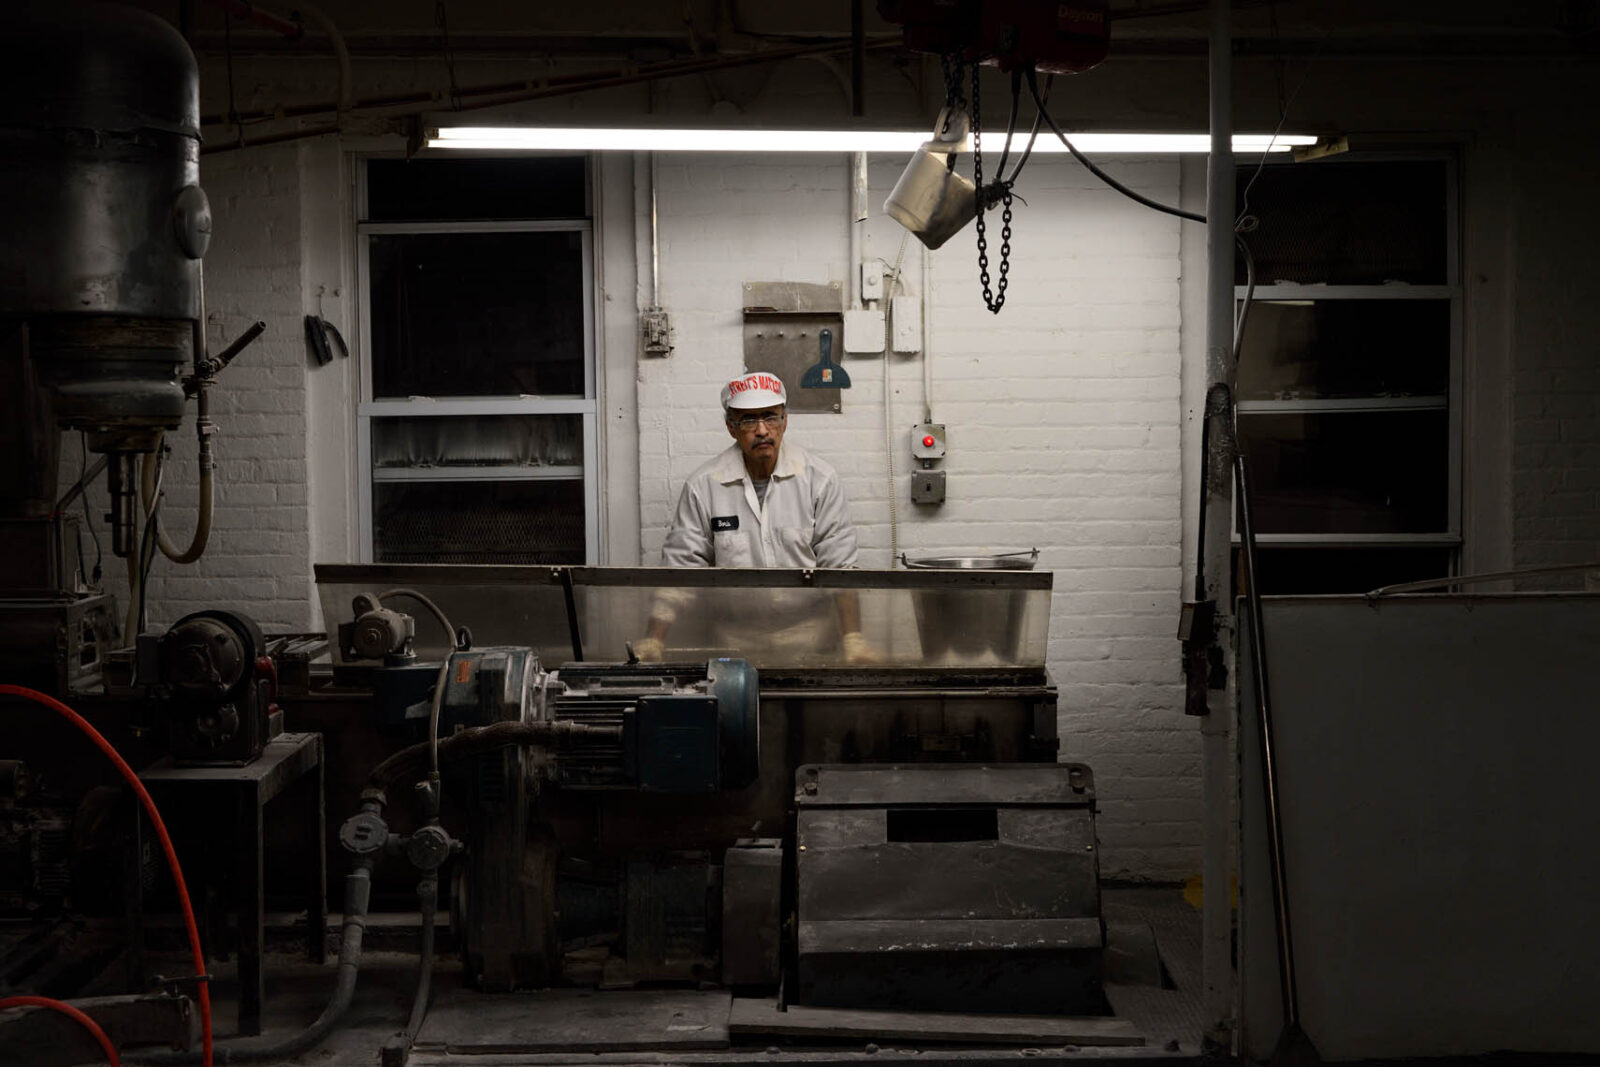 Color photo of a Streit's Matzos factory worker looking at the camera, standing behind a large flour mixer under a fluorescent light